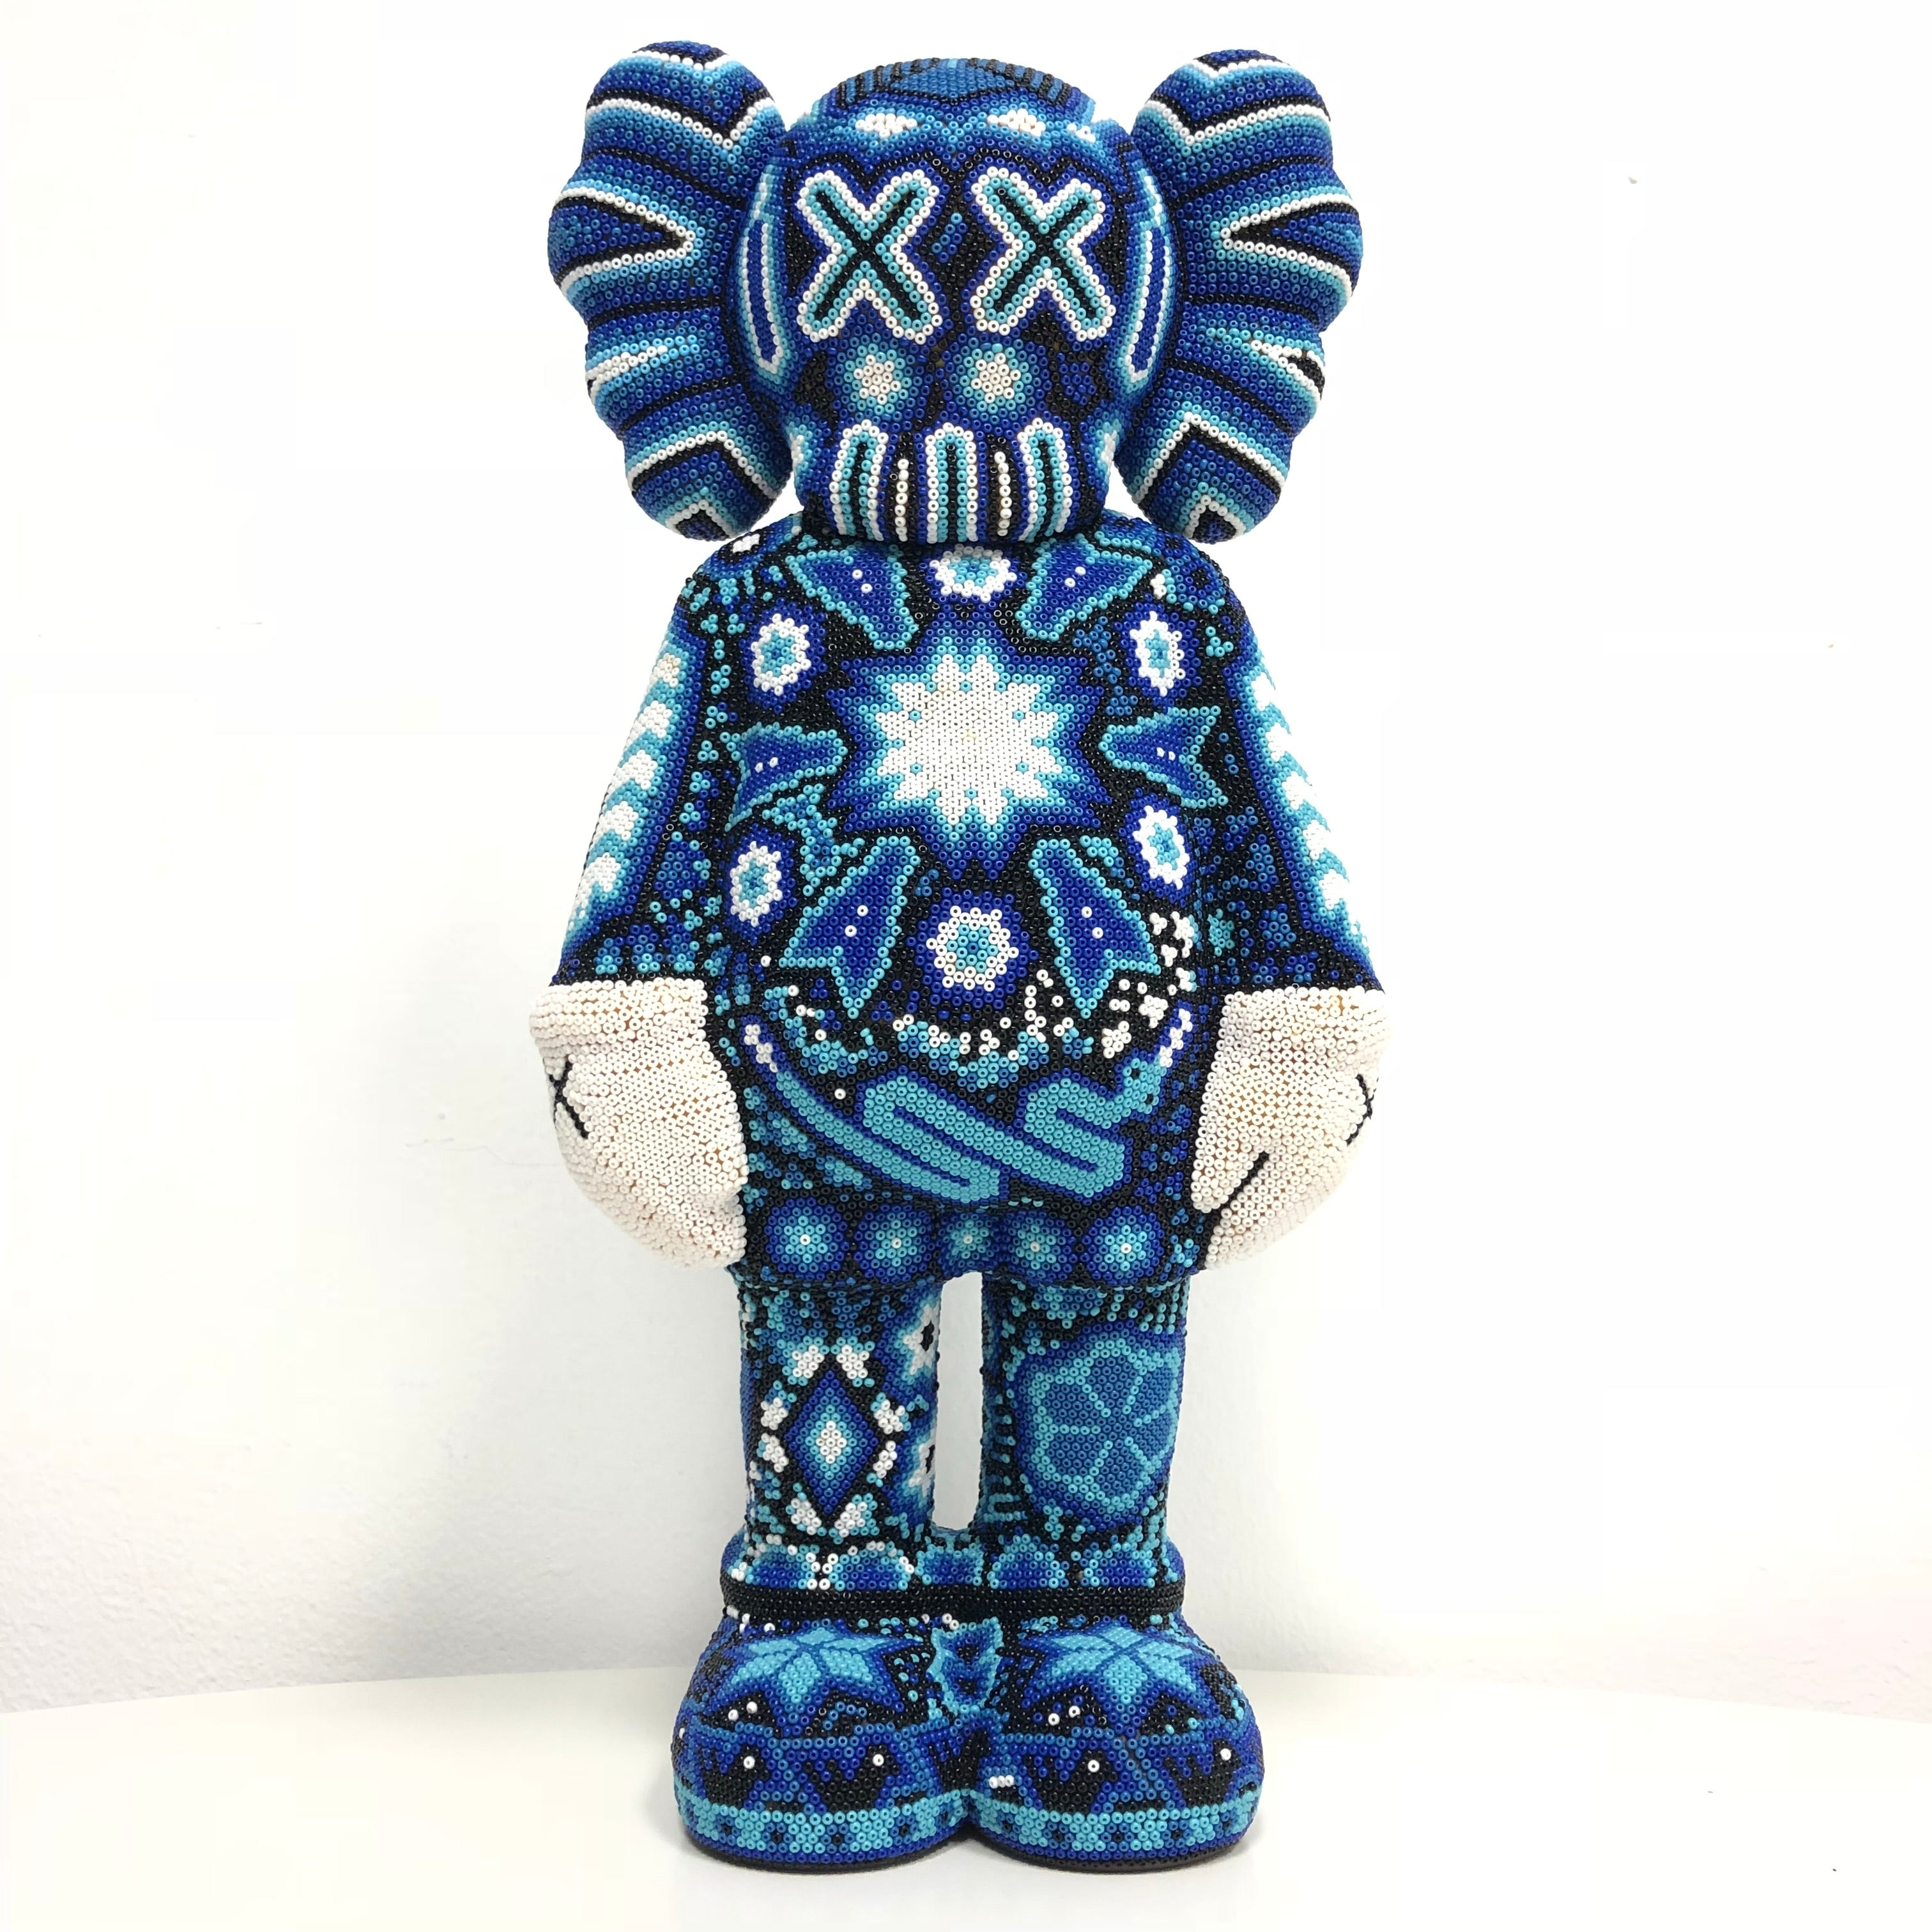 Kaws Inspired Blui - Hand Made - Beaded One By One - INSPIRES BASED KAWS - Hikkuri Casa - Mr. Hikkuri